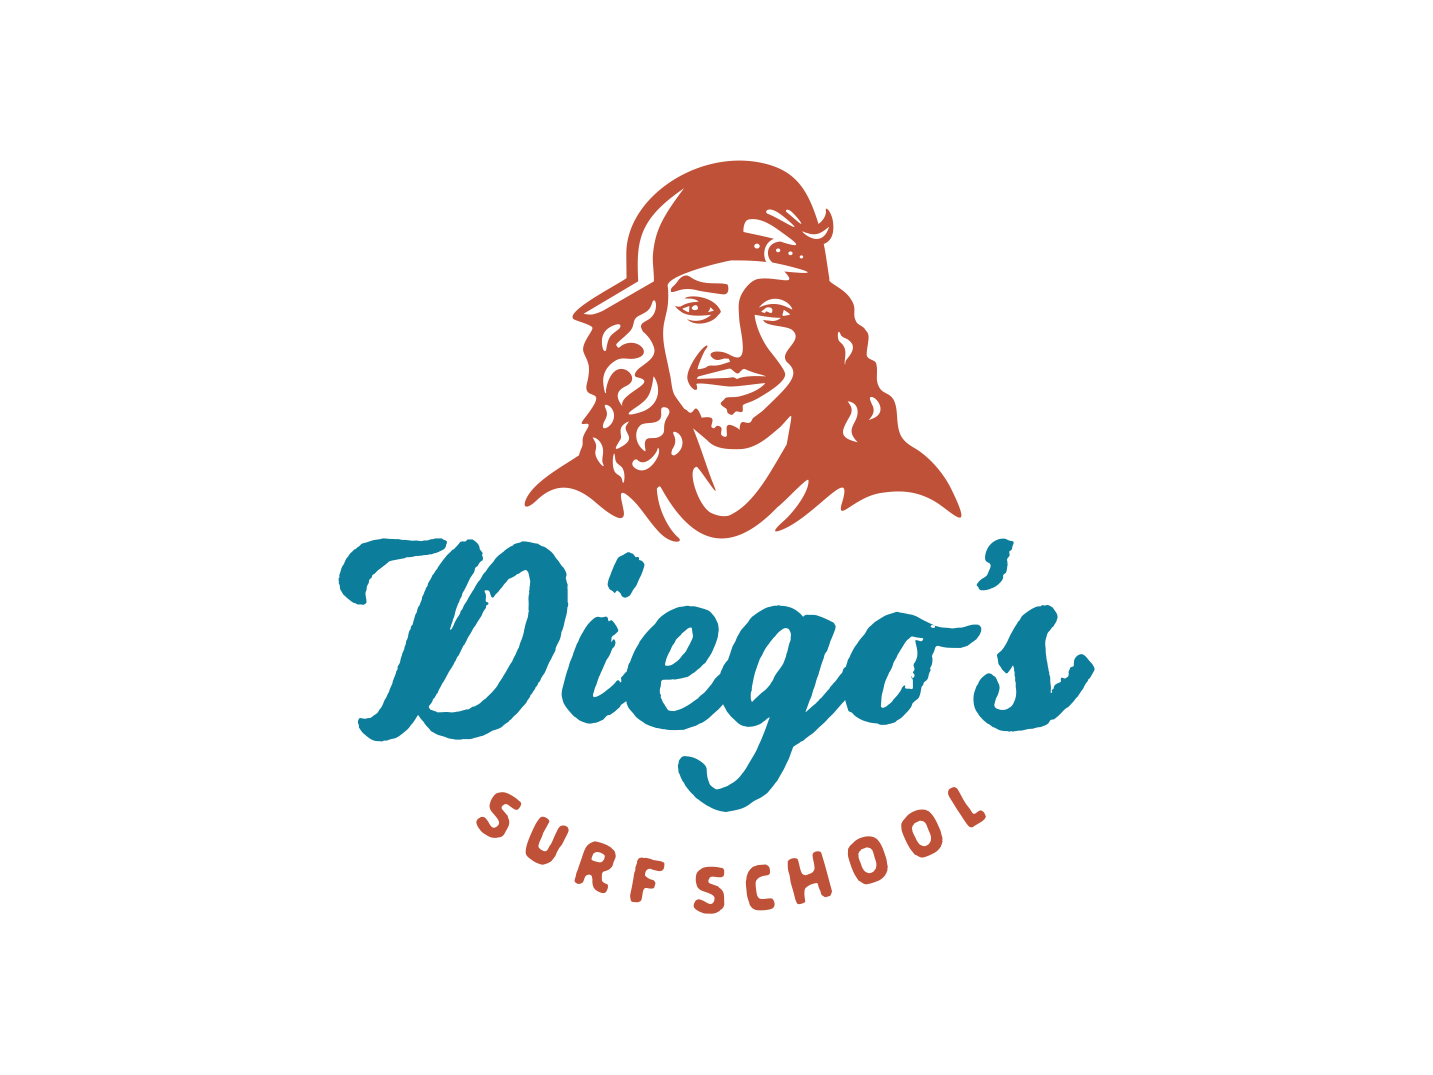 Diego costarica face surf character vector retro logo